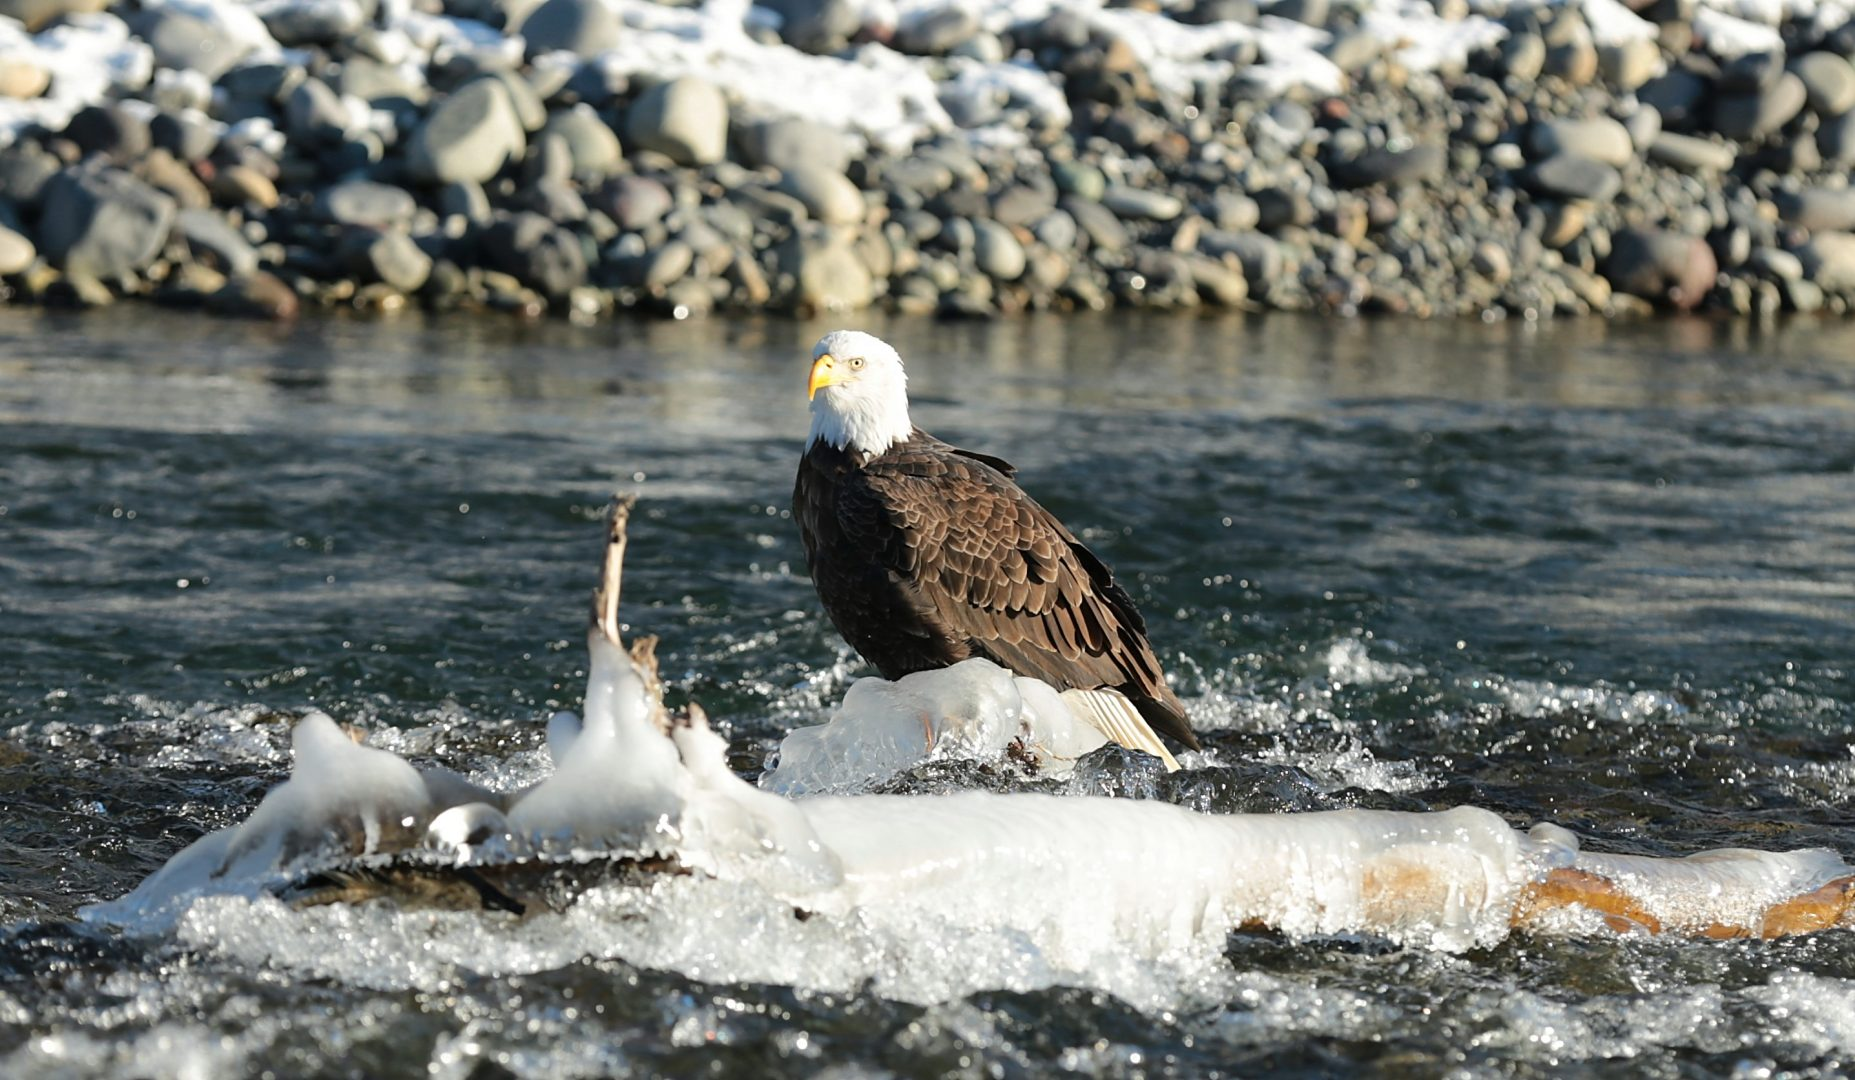 Bald Eagle at Nooksack River, Maple Falls, Washington